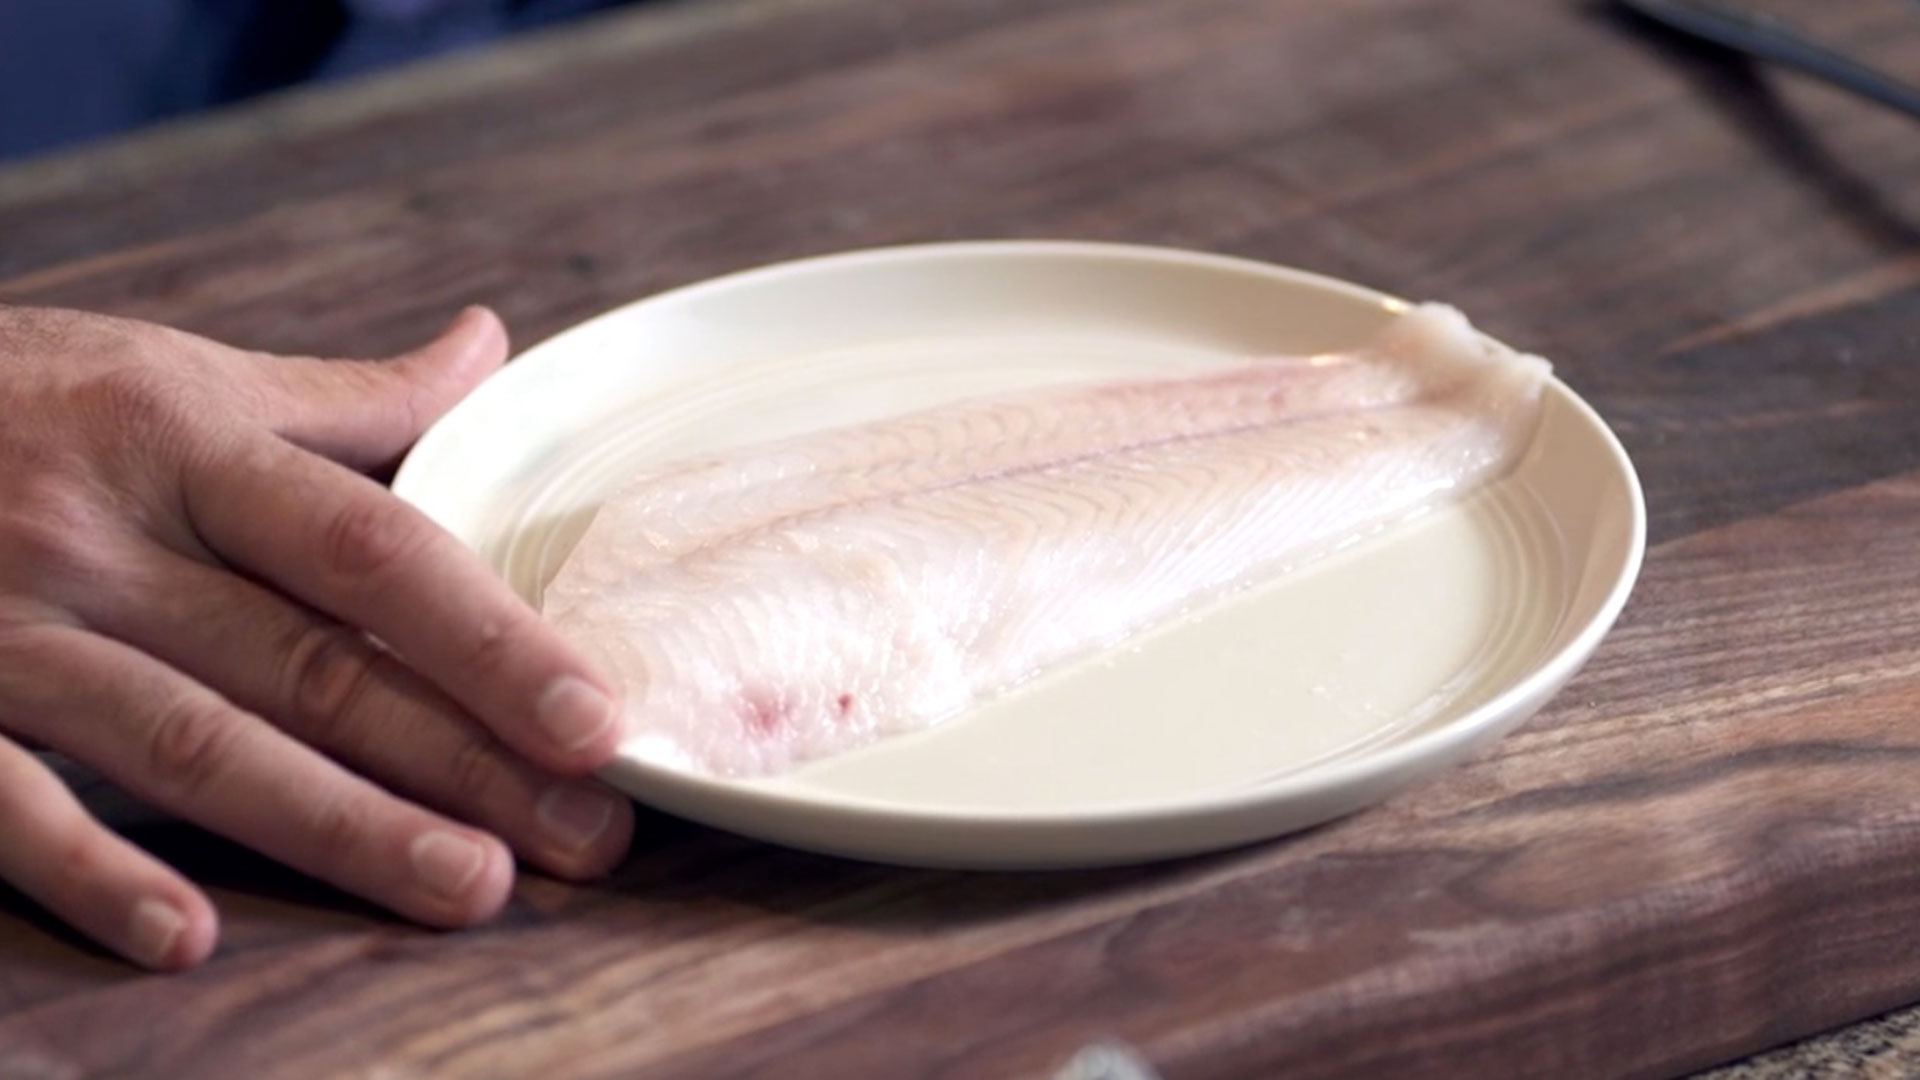 How to Tell if Your Fish is Fresh